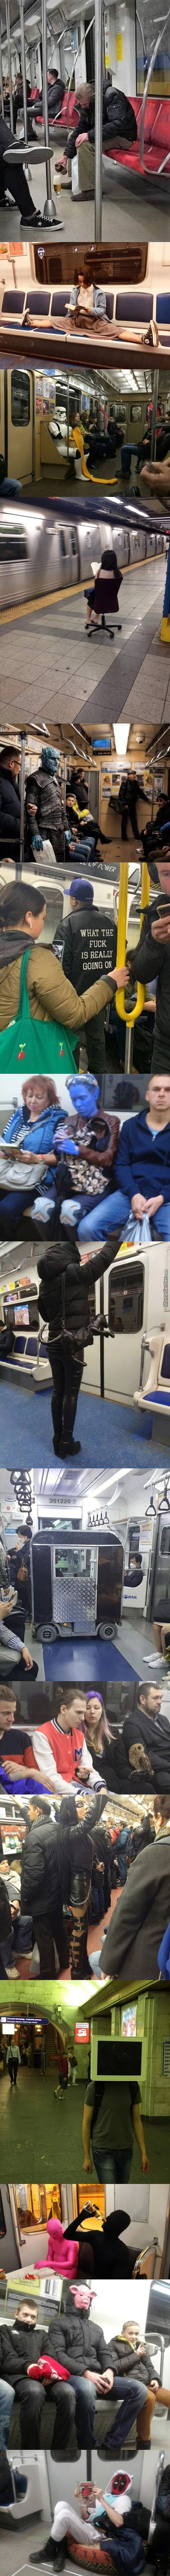 The Subway Chronicles 3